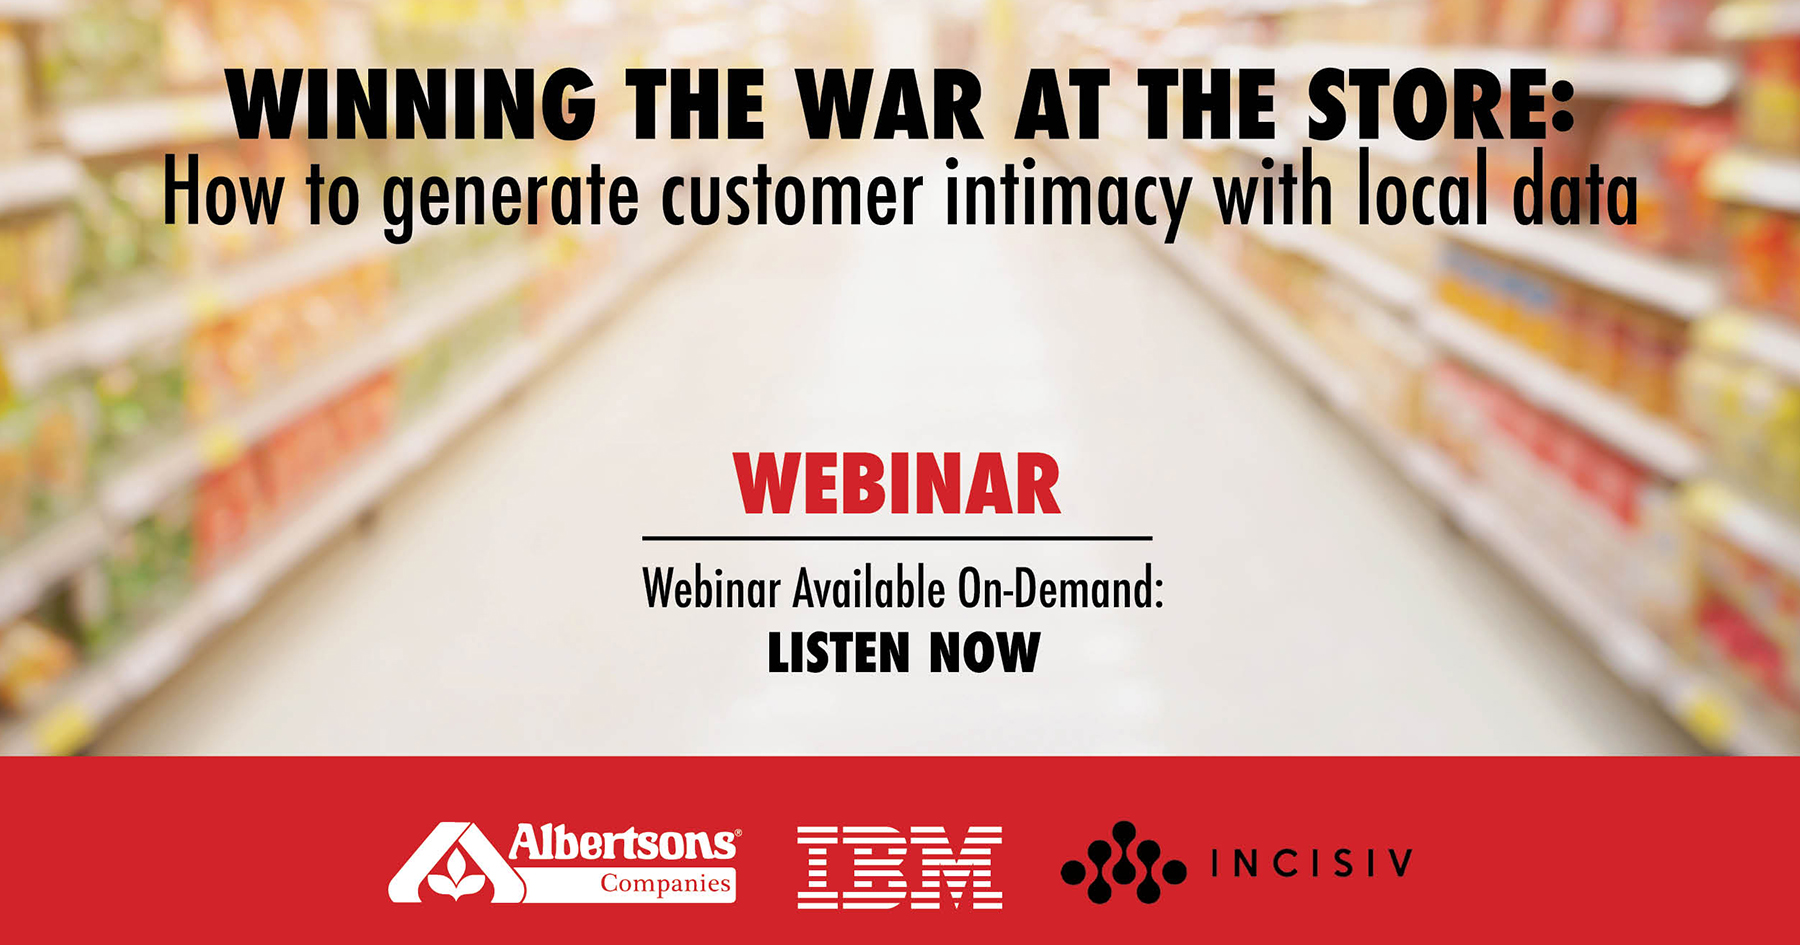 Winning the war at the store:  How to generate customer intimacy with local data